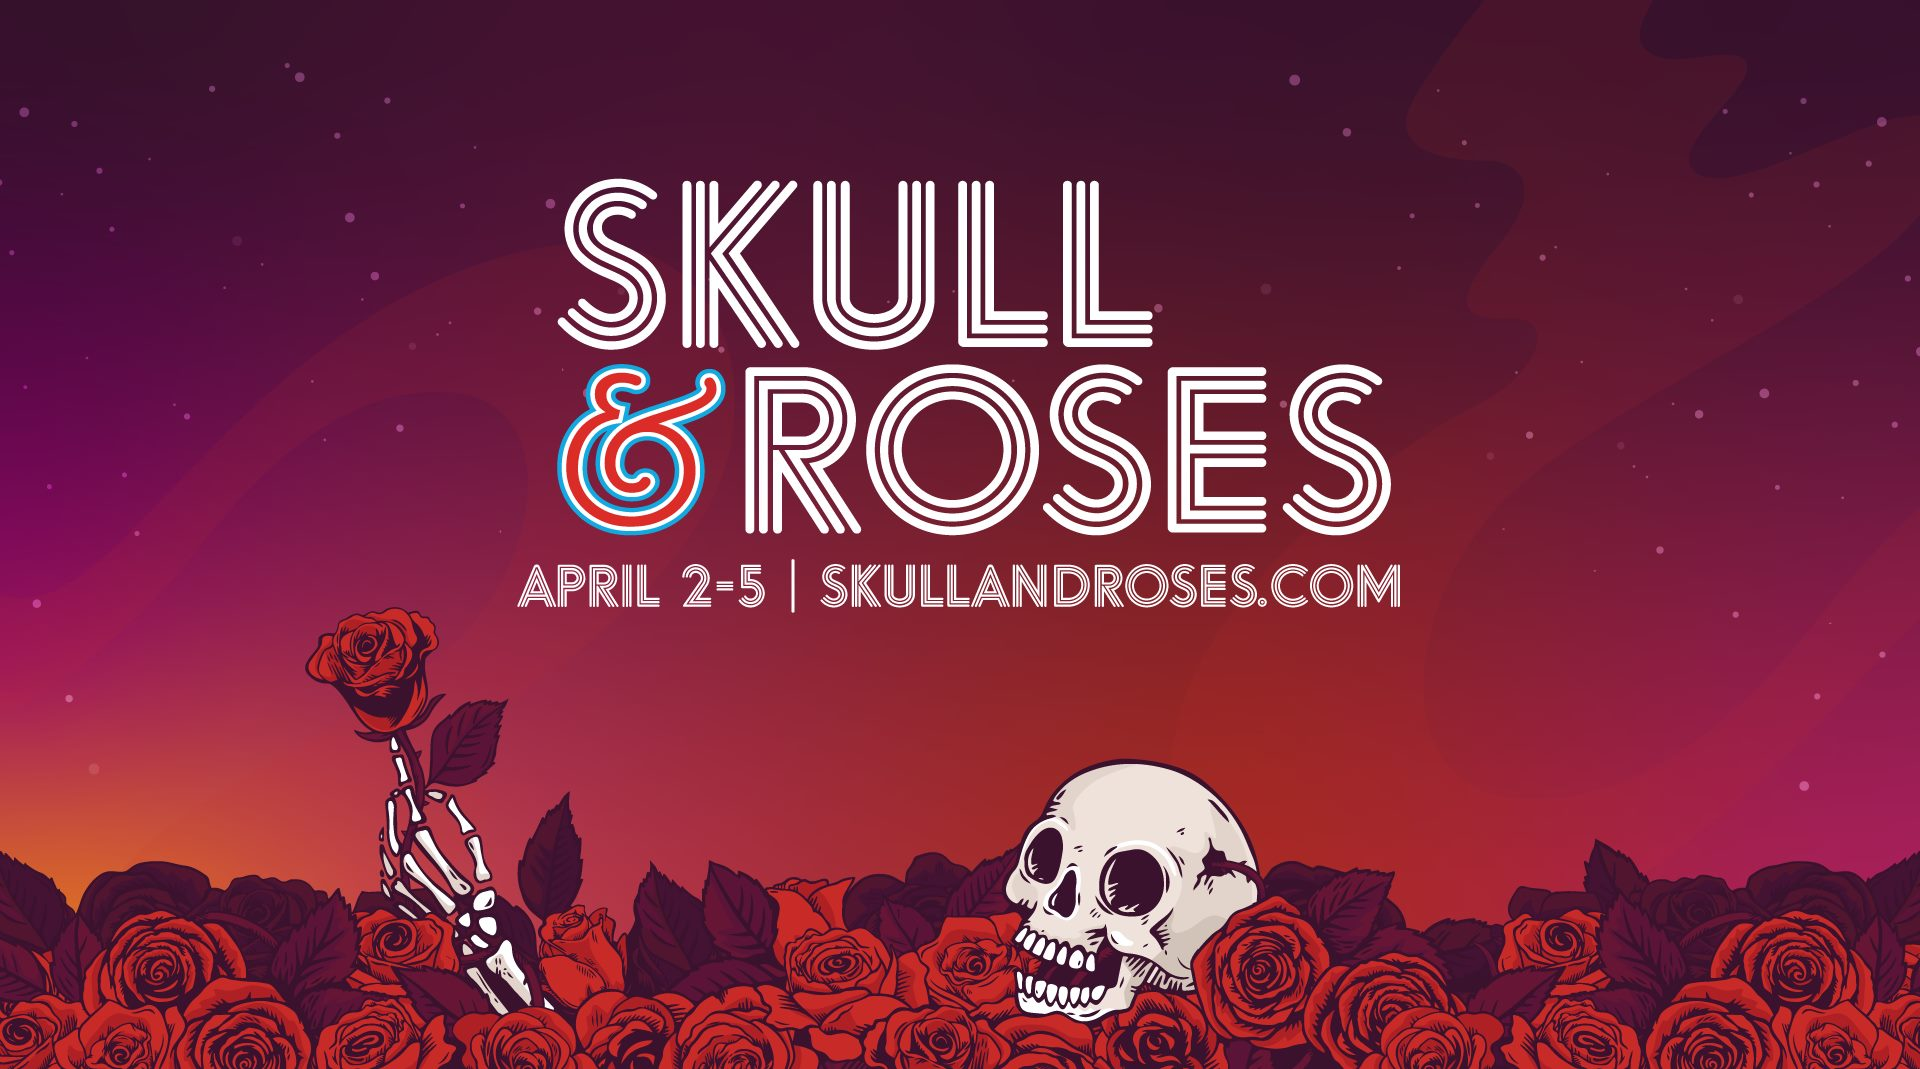 Skull & Roses Festival 2020 is only a month away!